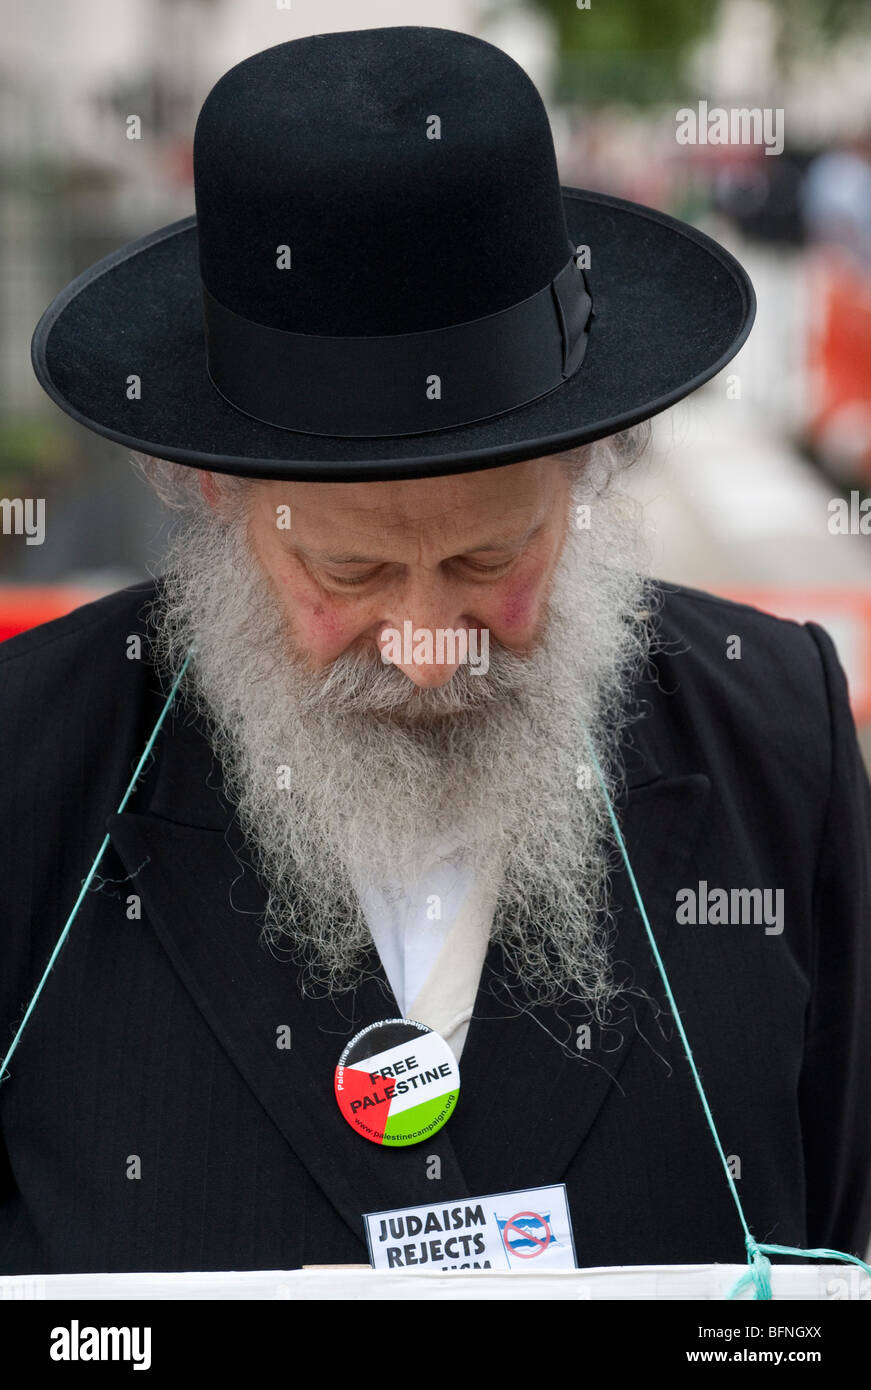 Rabbi against zionism protest outside n10 Downing Street during the visit of Israeli Prime Minister  Benjamin  Netanyahu - Stock Image